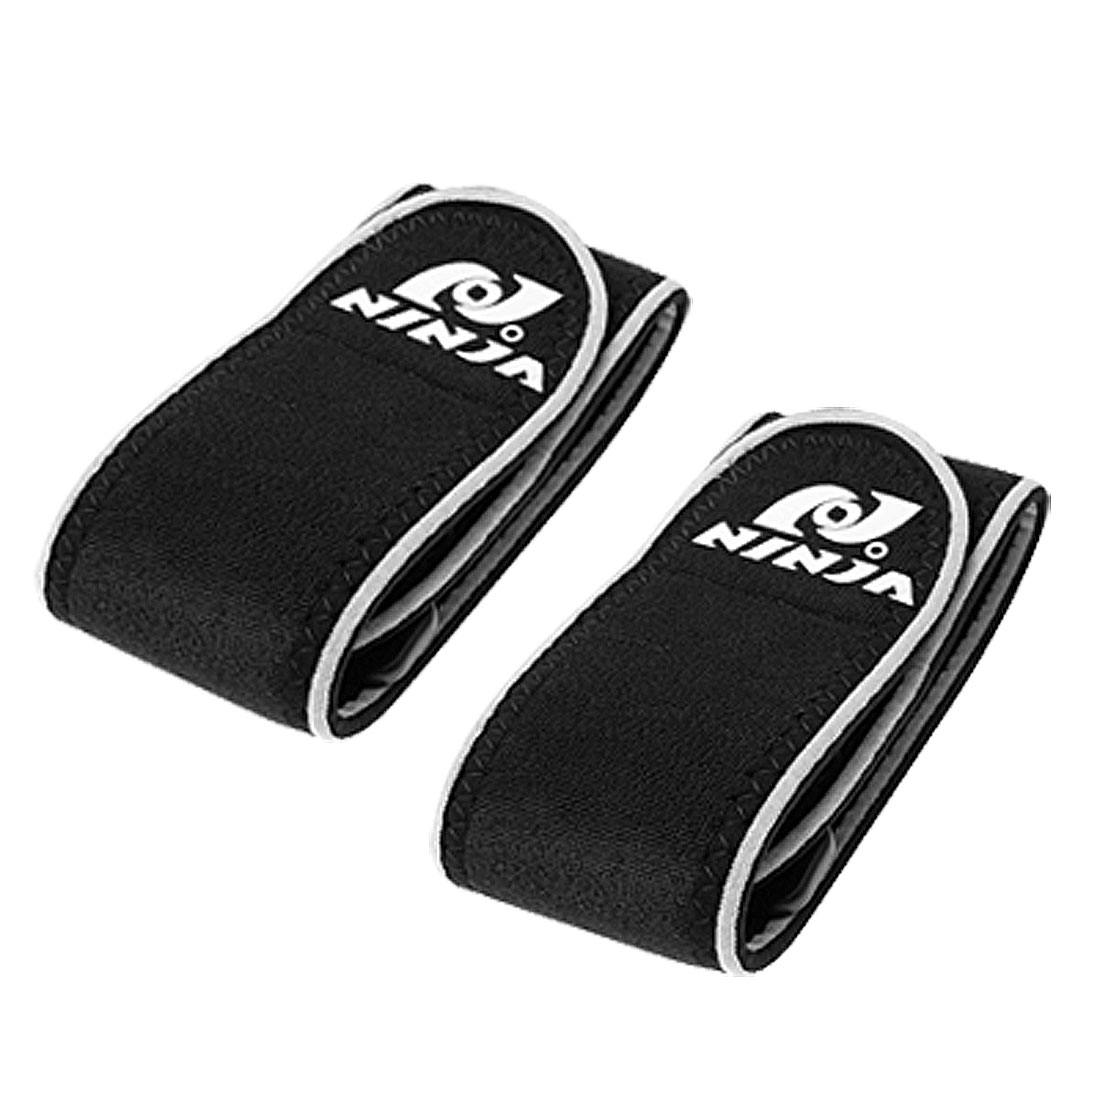 Black Neoprene Sports Wrist Support Protector 2PCS